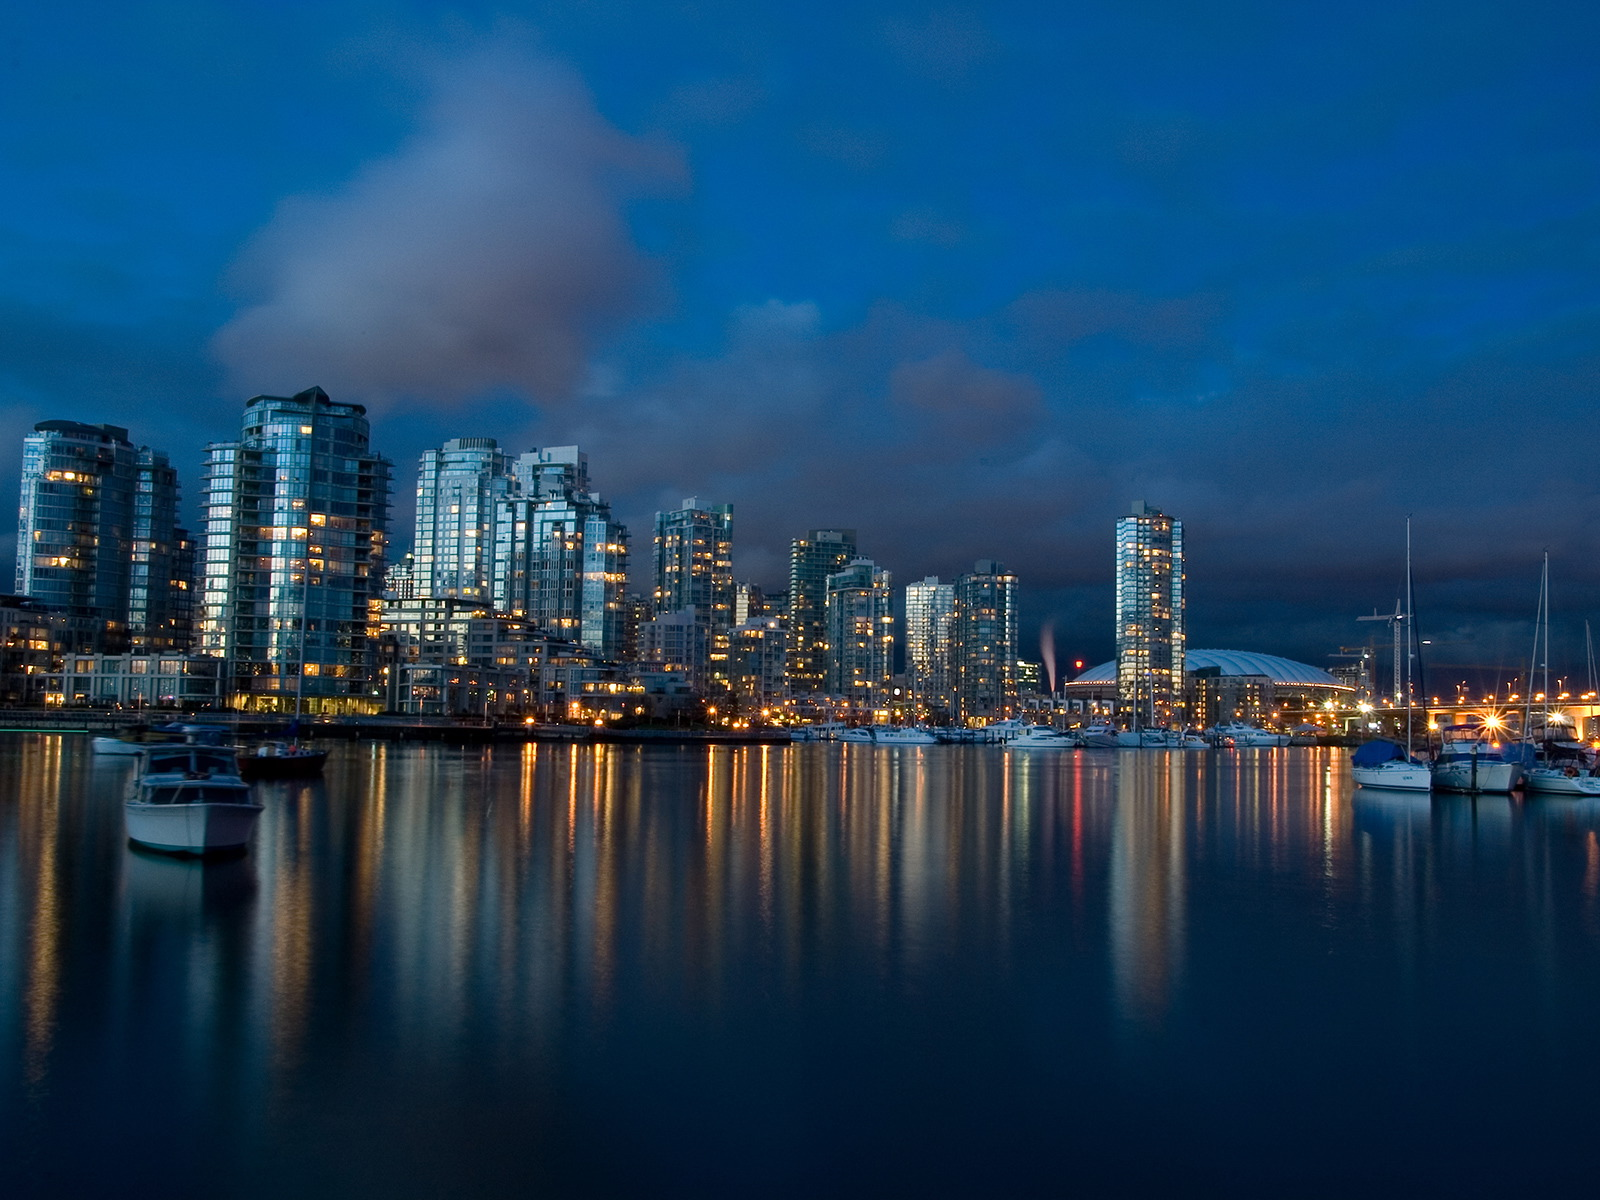 Amazing Cityscape Wallpapers 08vancouverdusk1600x120